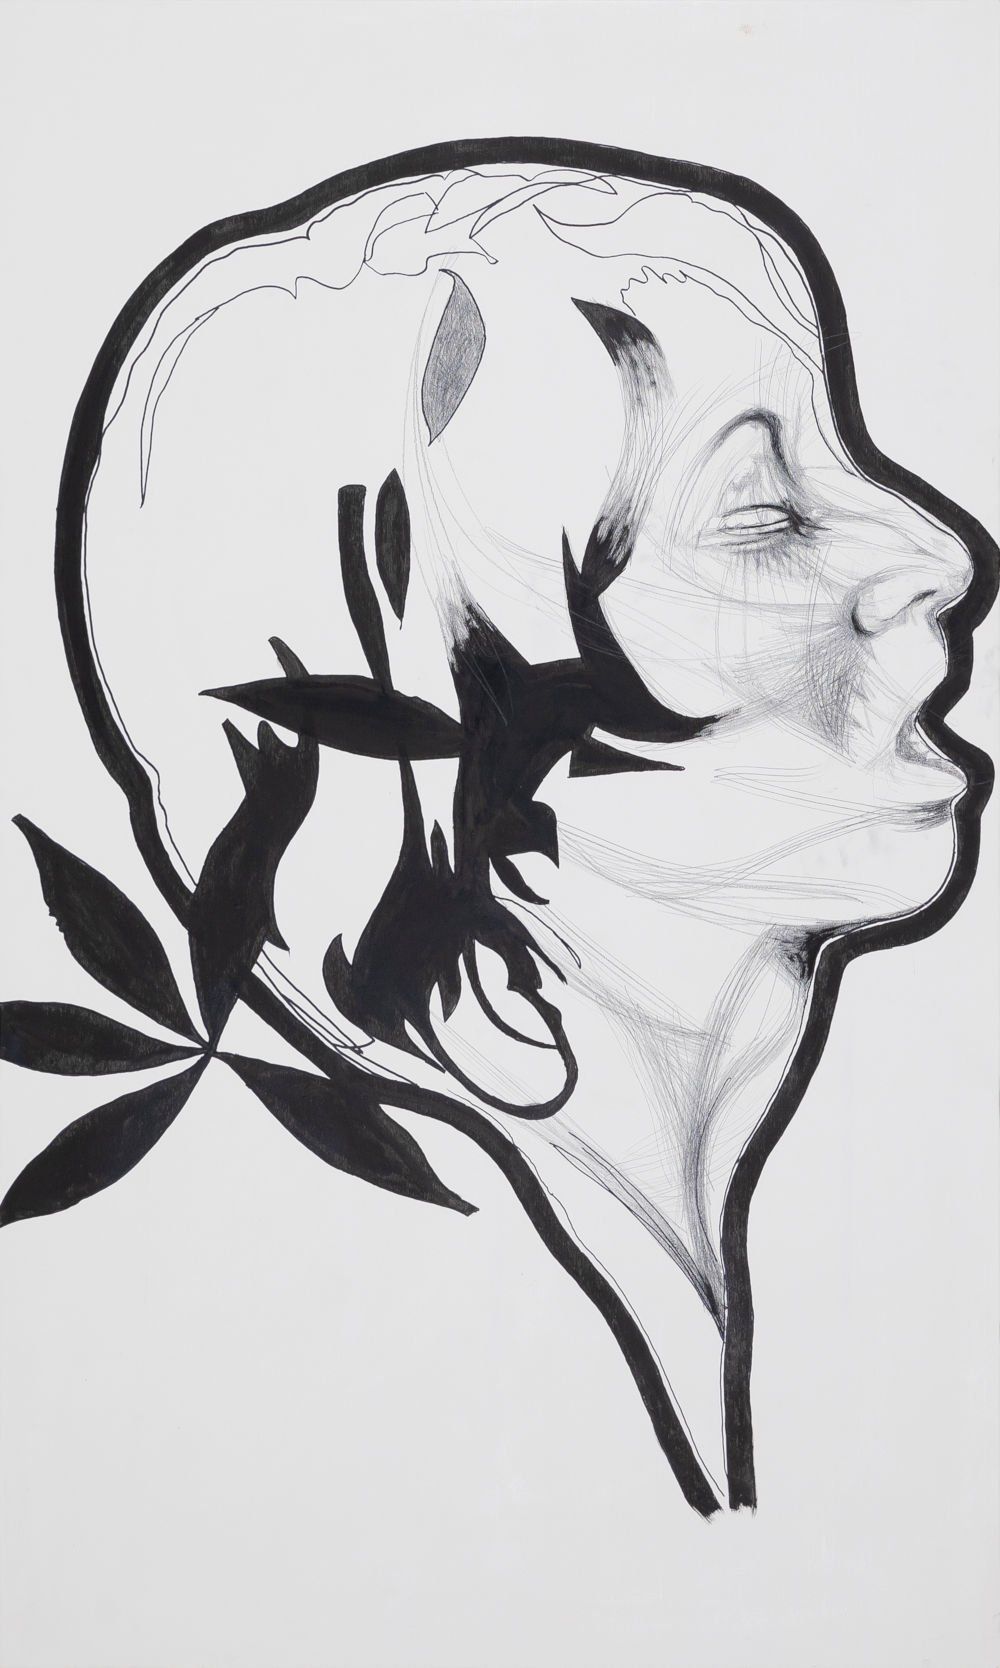 Franz Graf, SHOOT, 2018 - 2019. Graphite and ink on wood 200 x 120 x 8 cm